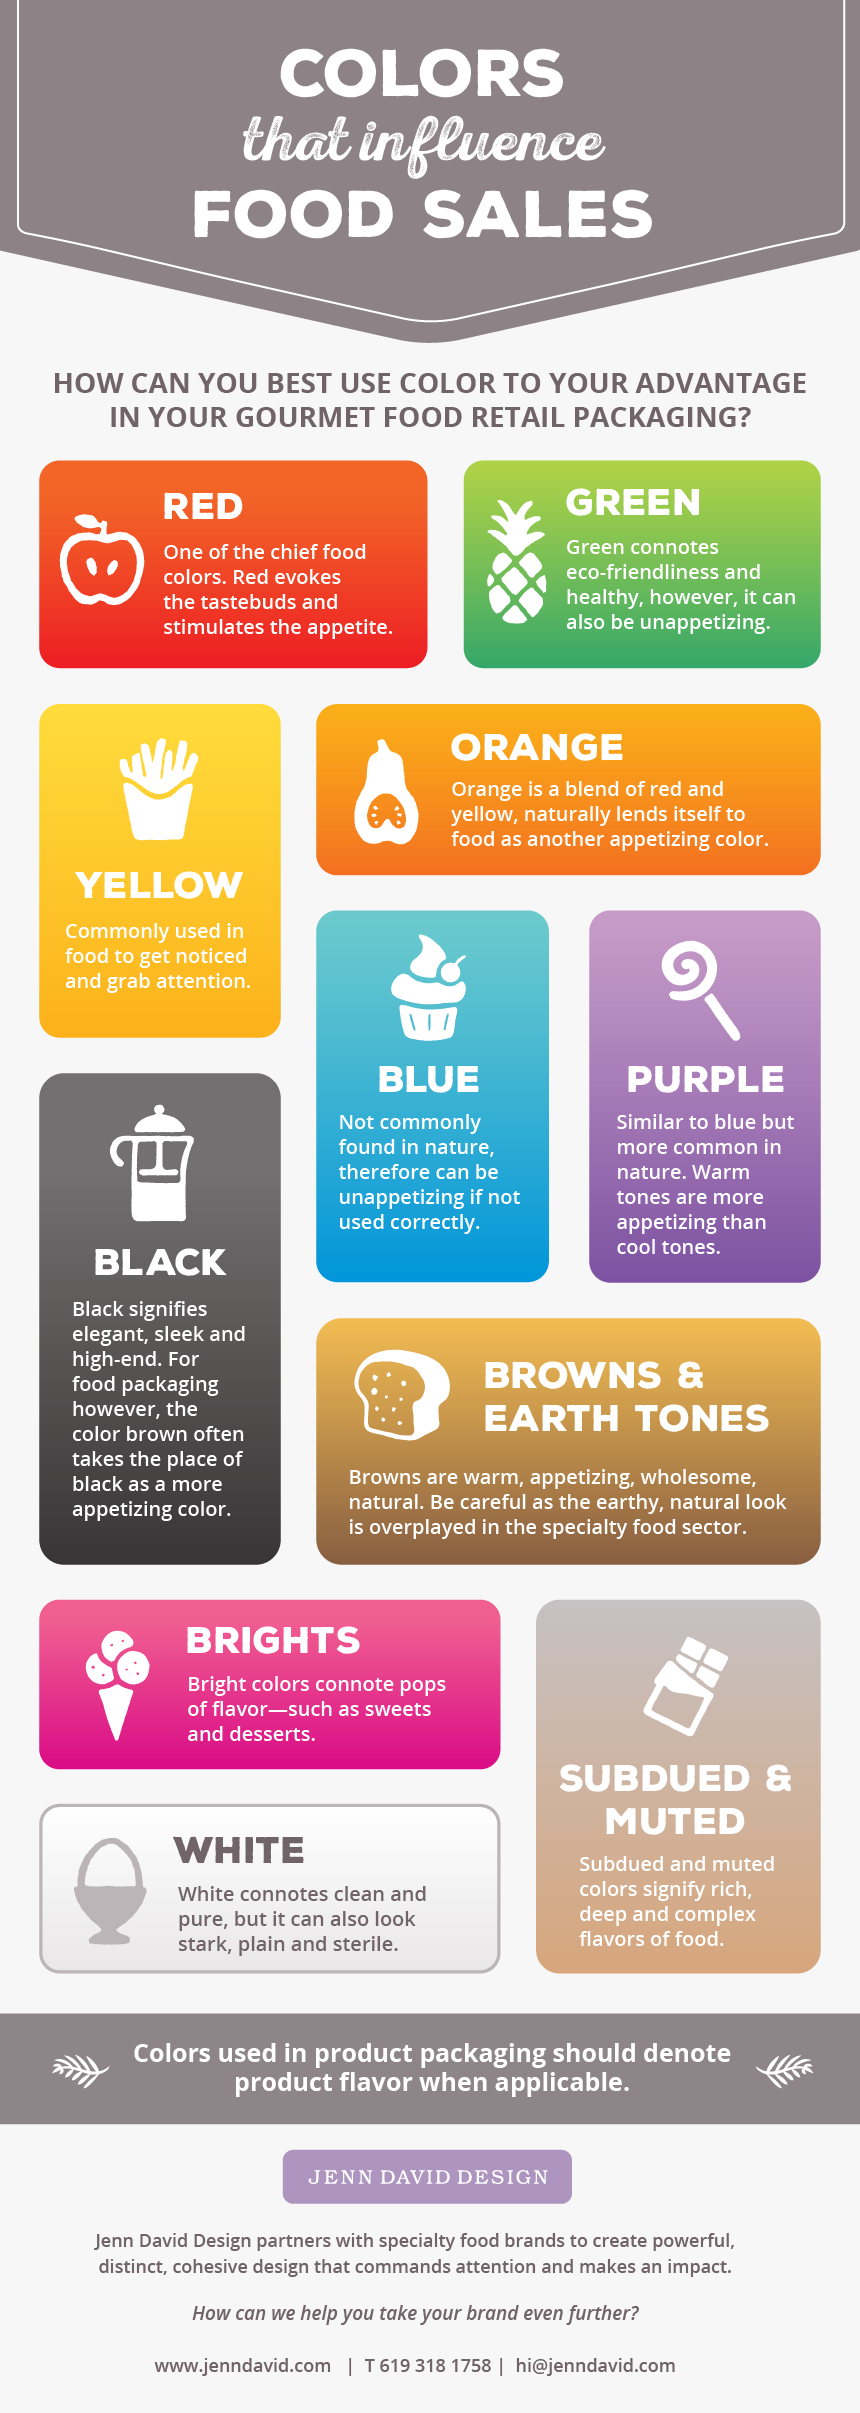 colors that influence food sales